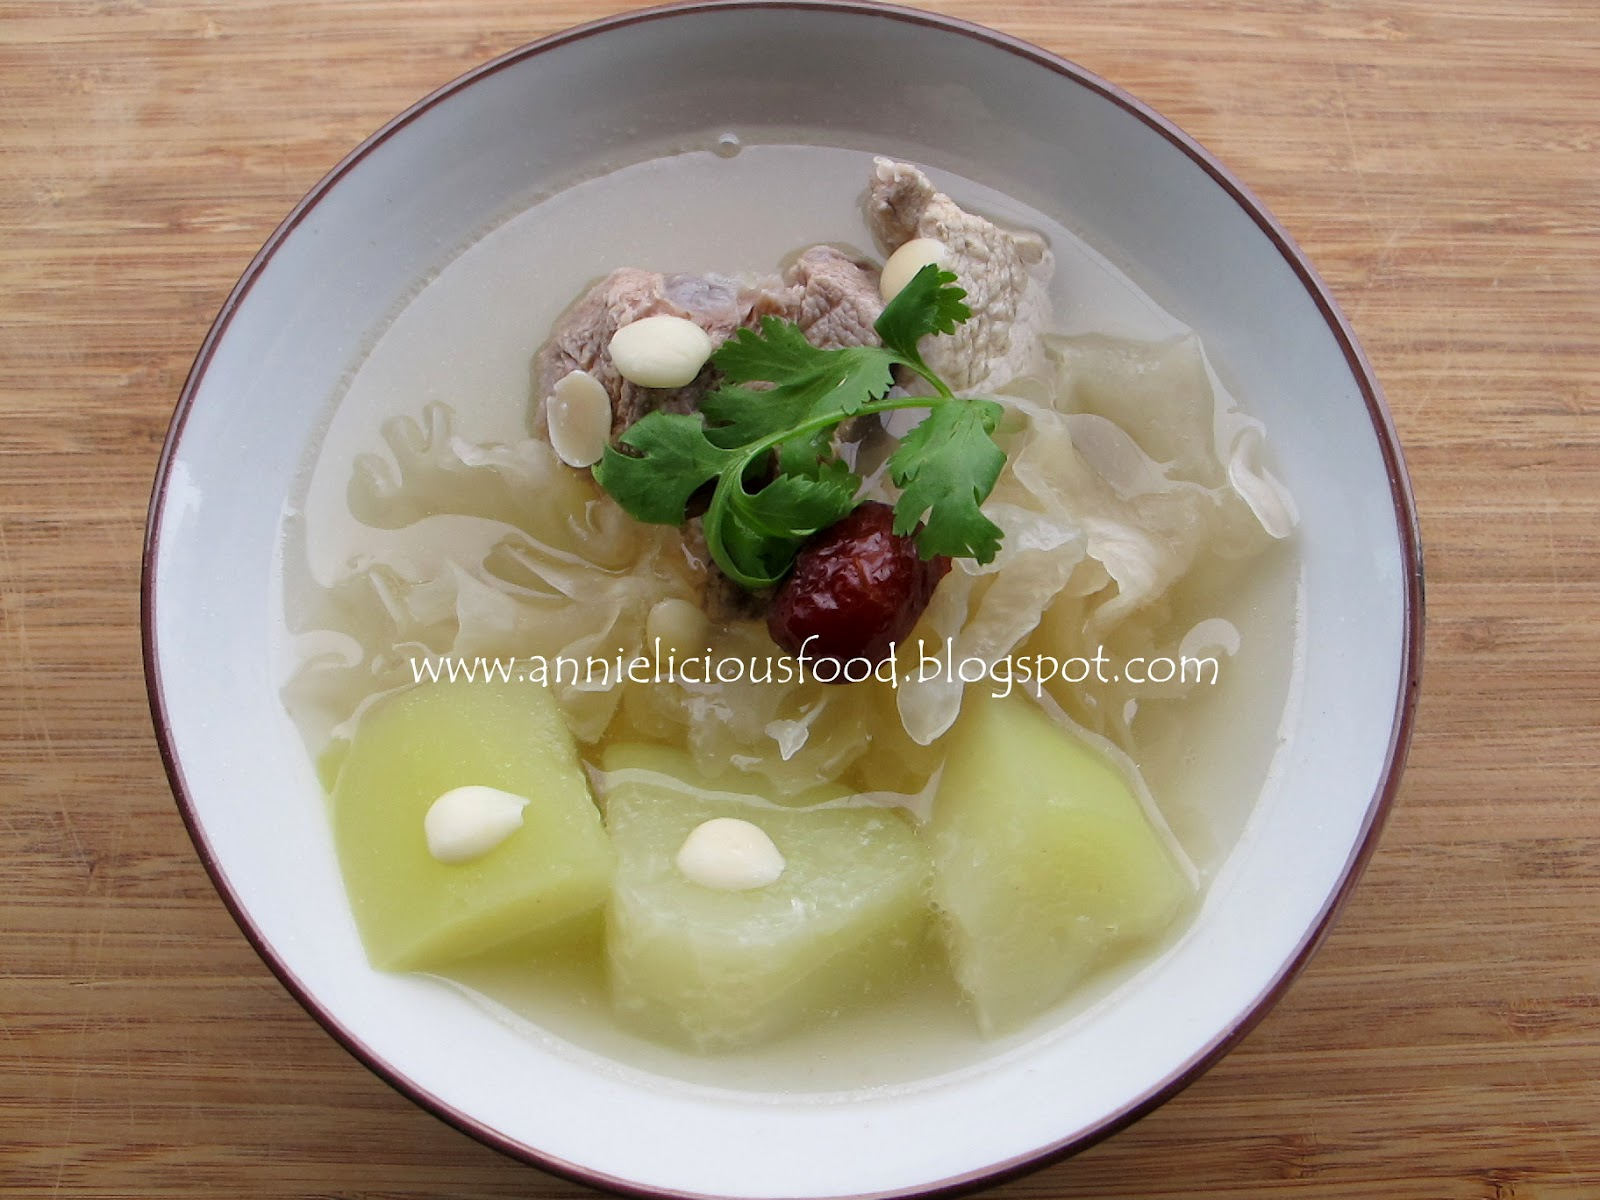 Annielicious food papaya and white fungus beauty soup thursday may 17 2012 forumfinder Choice Image